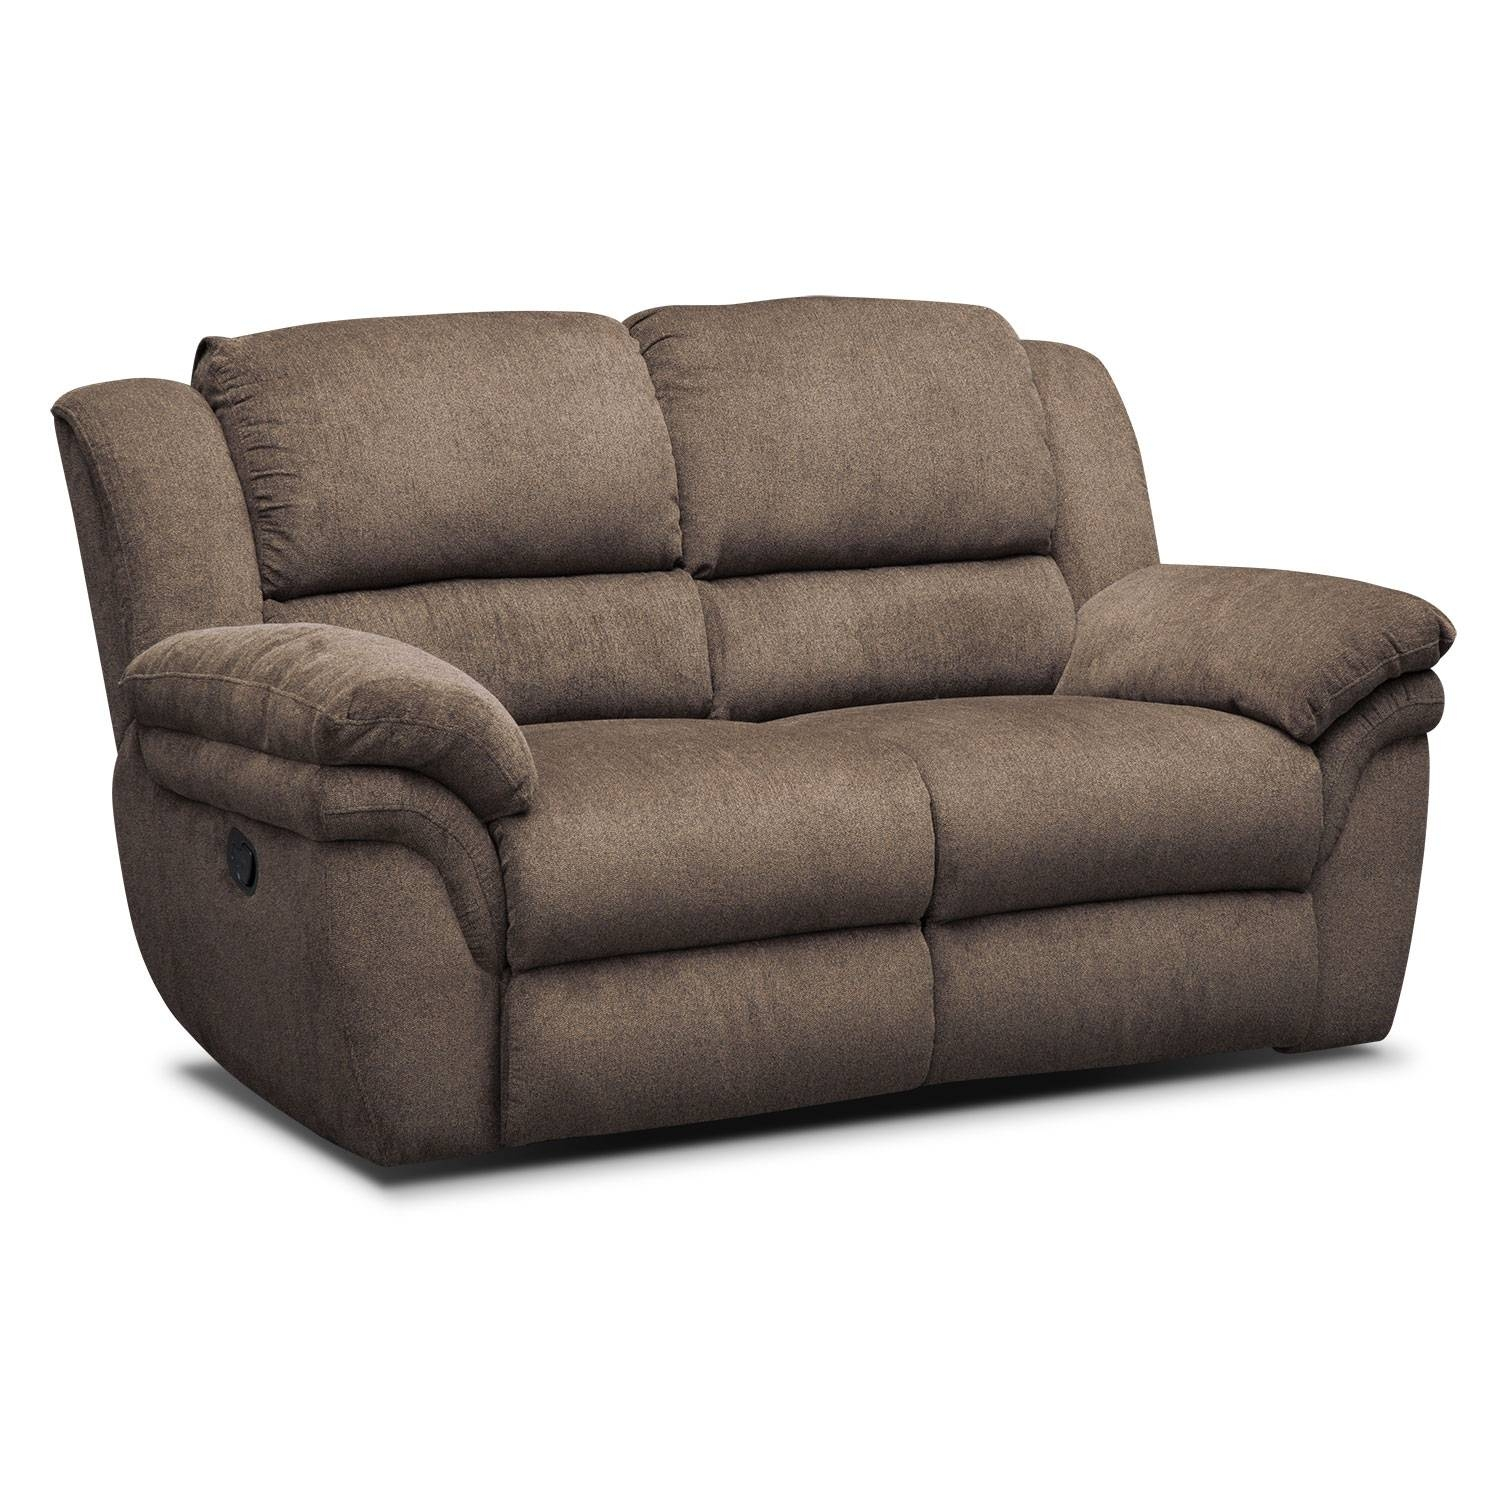 Aldo Manual Dual-Reclining Sofa, Loveseat And Recliner Set - Mocha with regard to Recliner Sofa Chairs (Image 1 of 30)